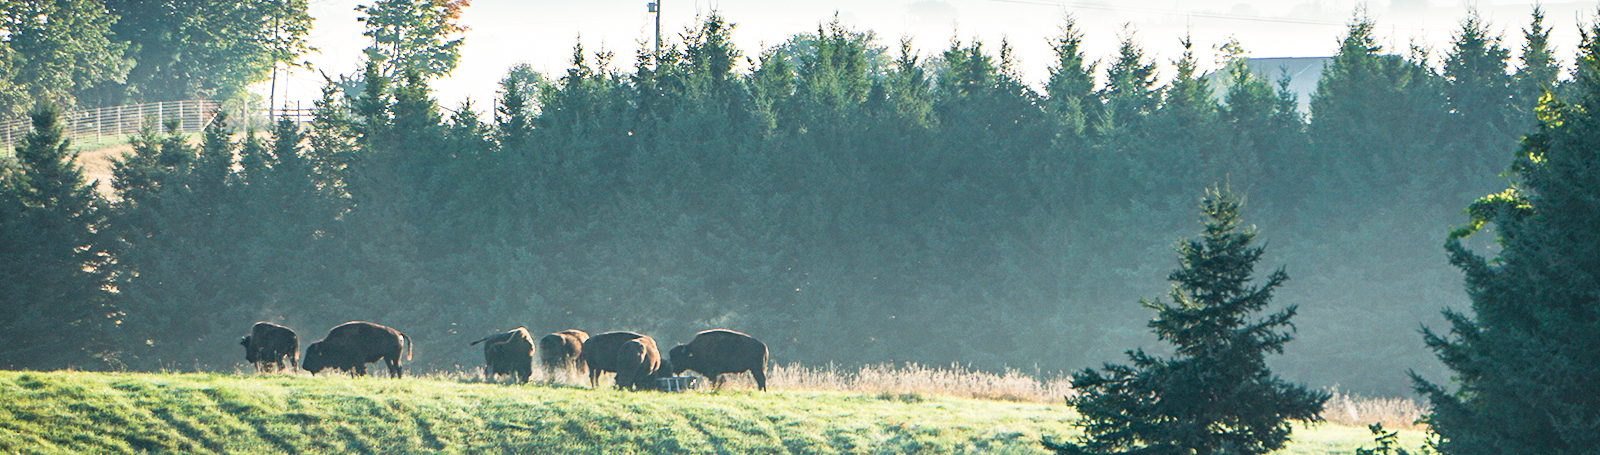 Thunder Ridge Bison Co., Bison Breeding in Uxbridge, Ontario